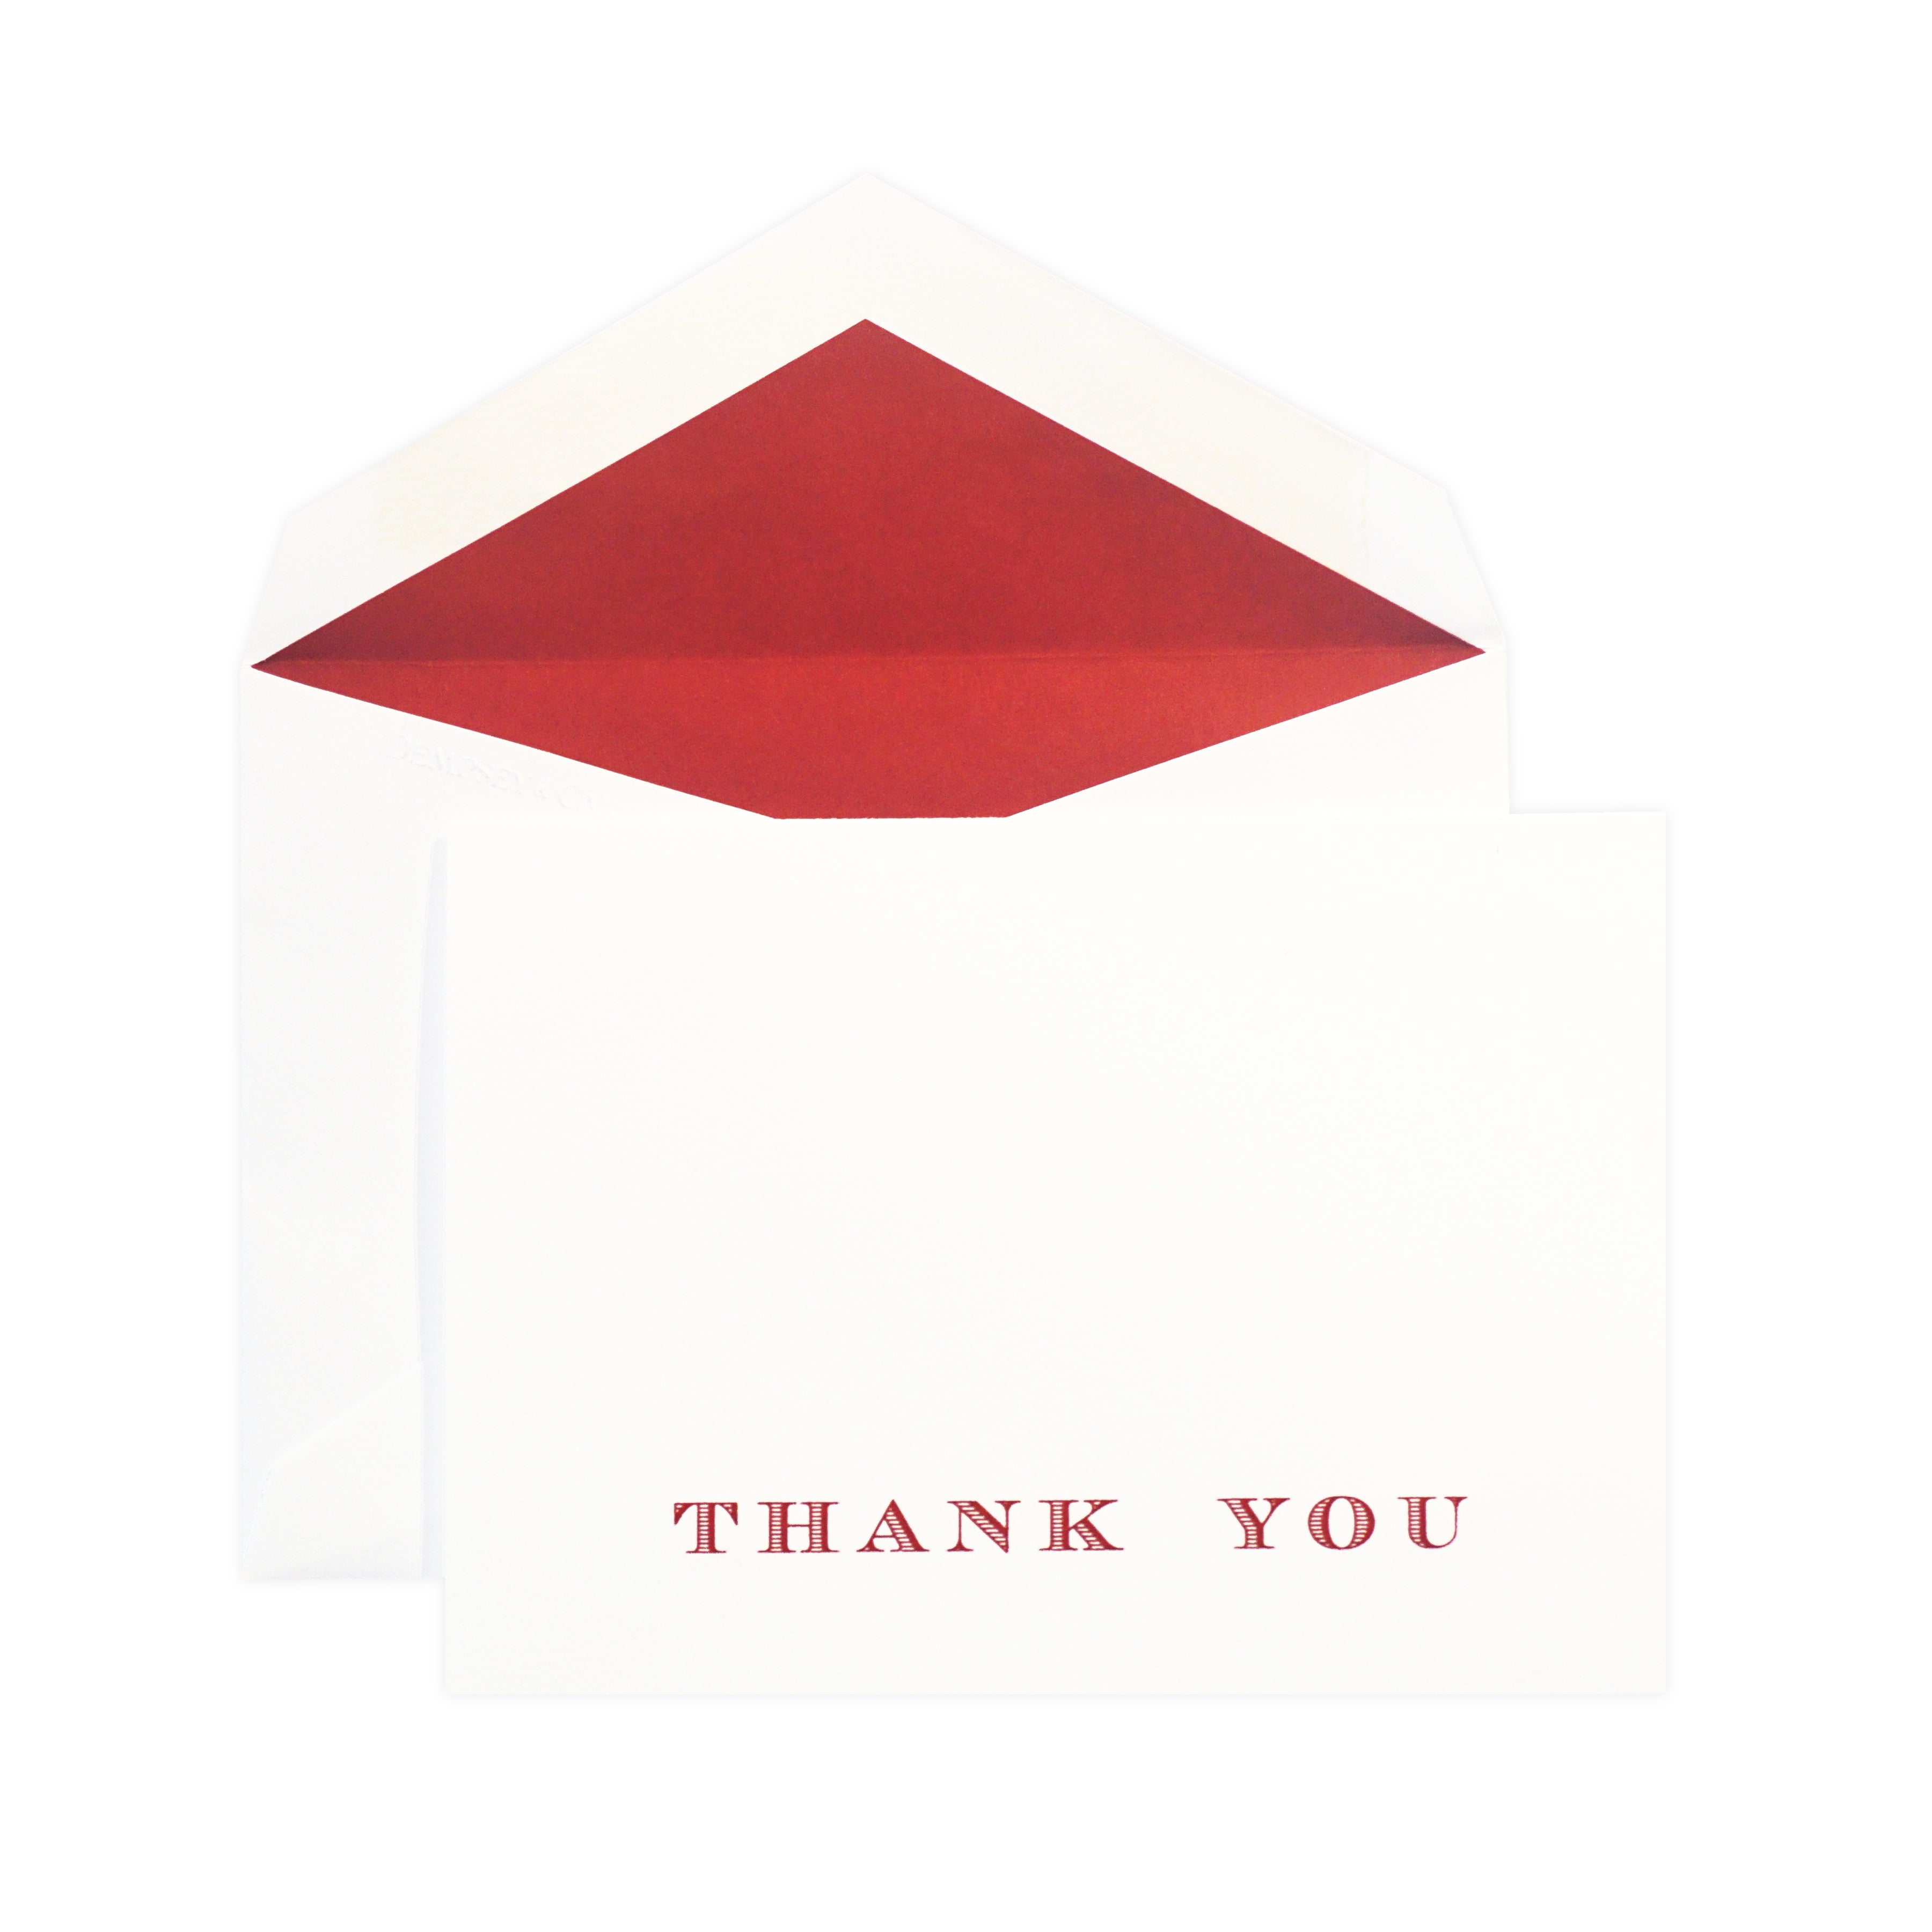 THANK YOU IN VIVA RED ON WHITE